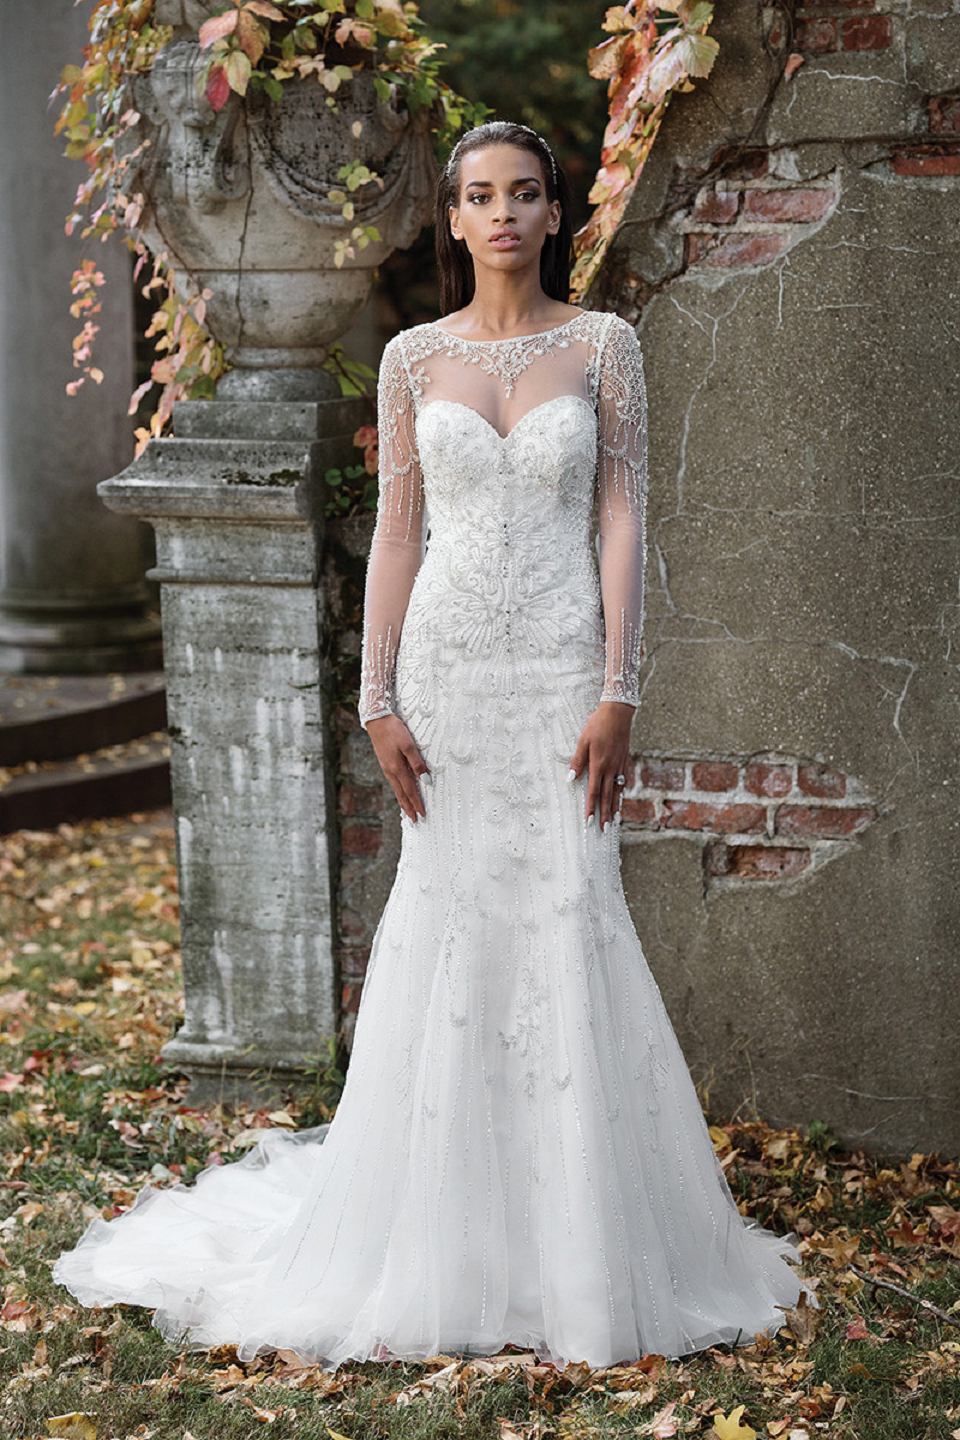 Wedding dress bling Beaded Fit and Flare Bridal Gown with Illusion Neckline and Long Detailed Sleeves